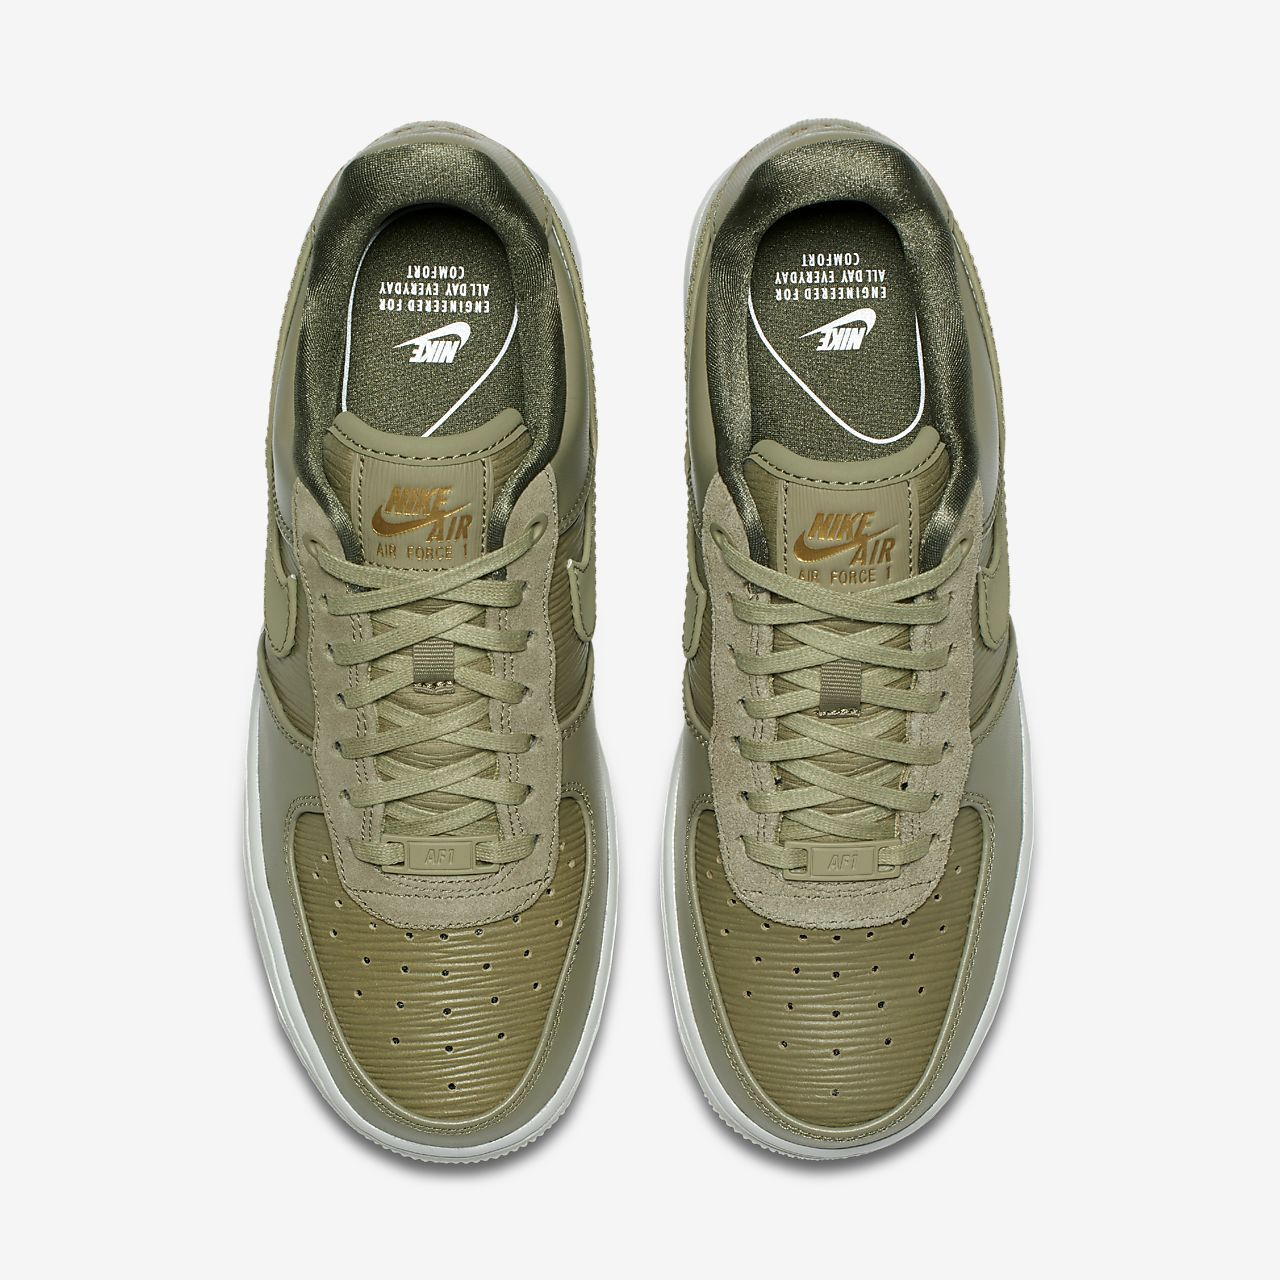 competitive price 6a612 51fb0 Nike Air Force 1 07 LX Womens Shoe